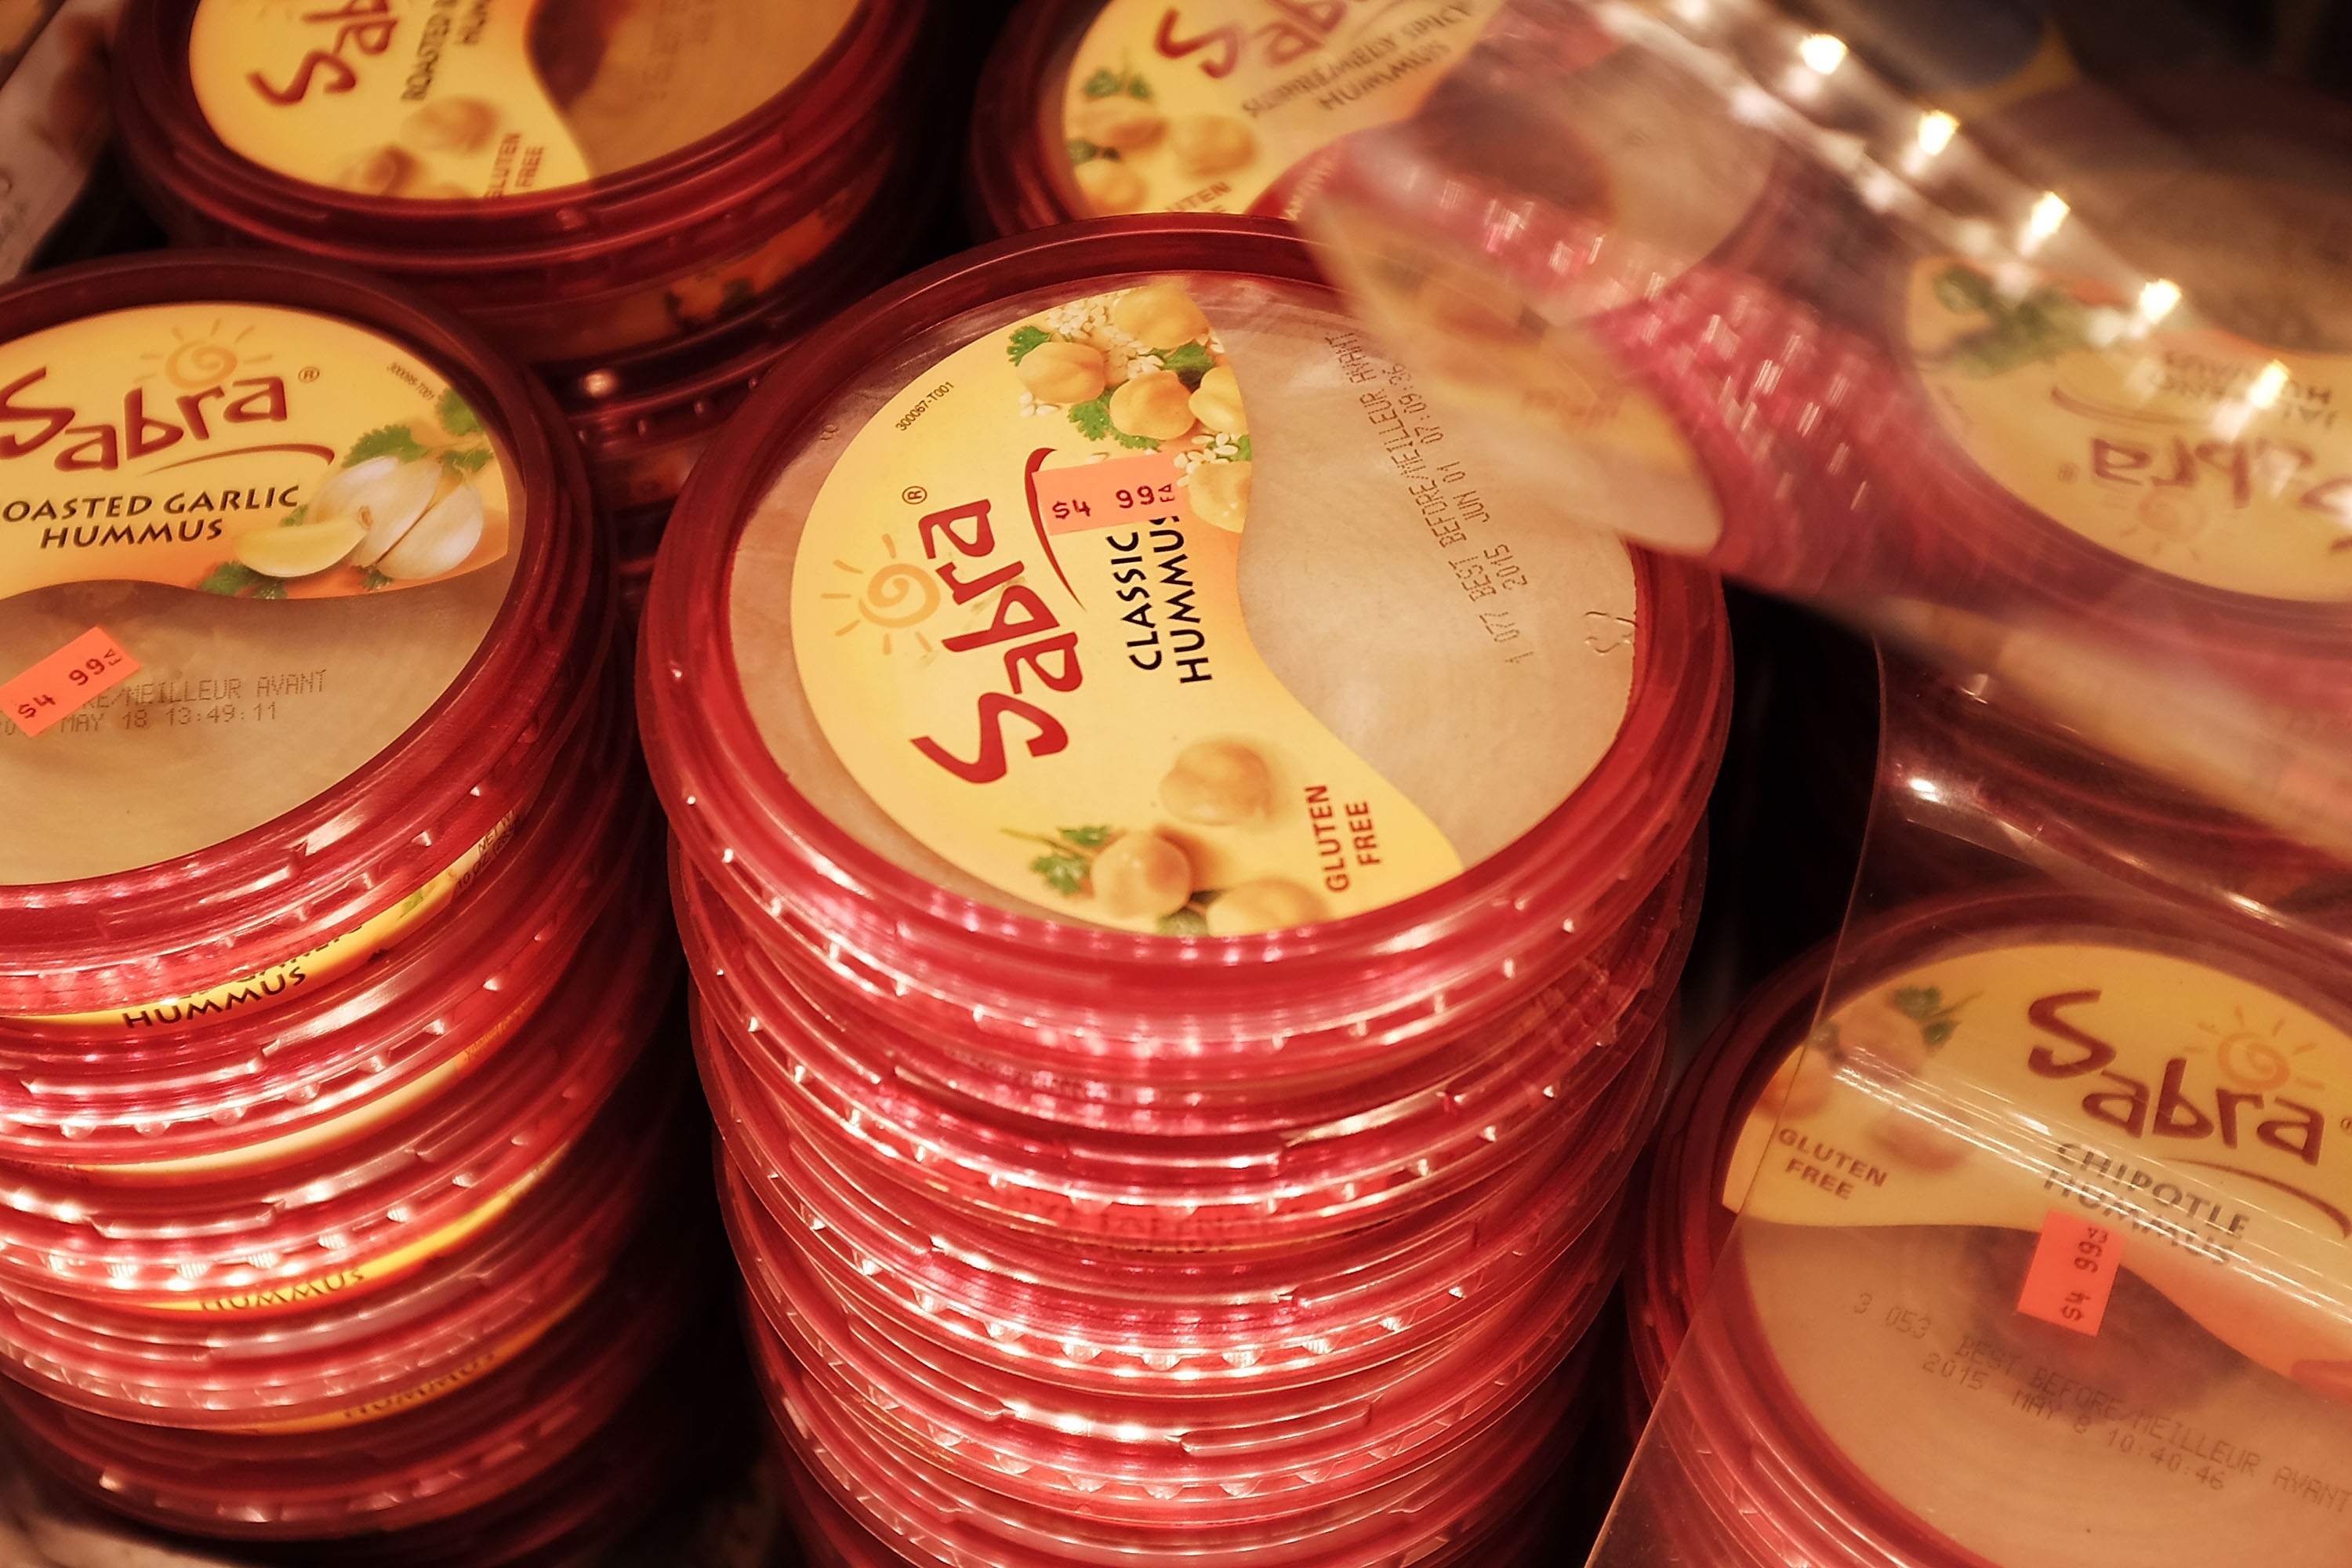 National Recall Prompted Of Thousands Of Sabra Hummus Cases Due To Possible Listeria Contamination